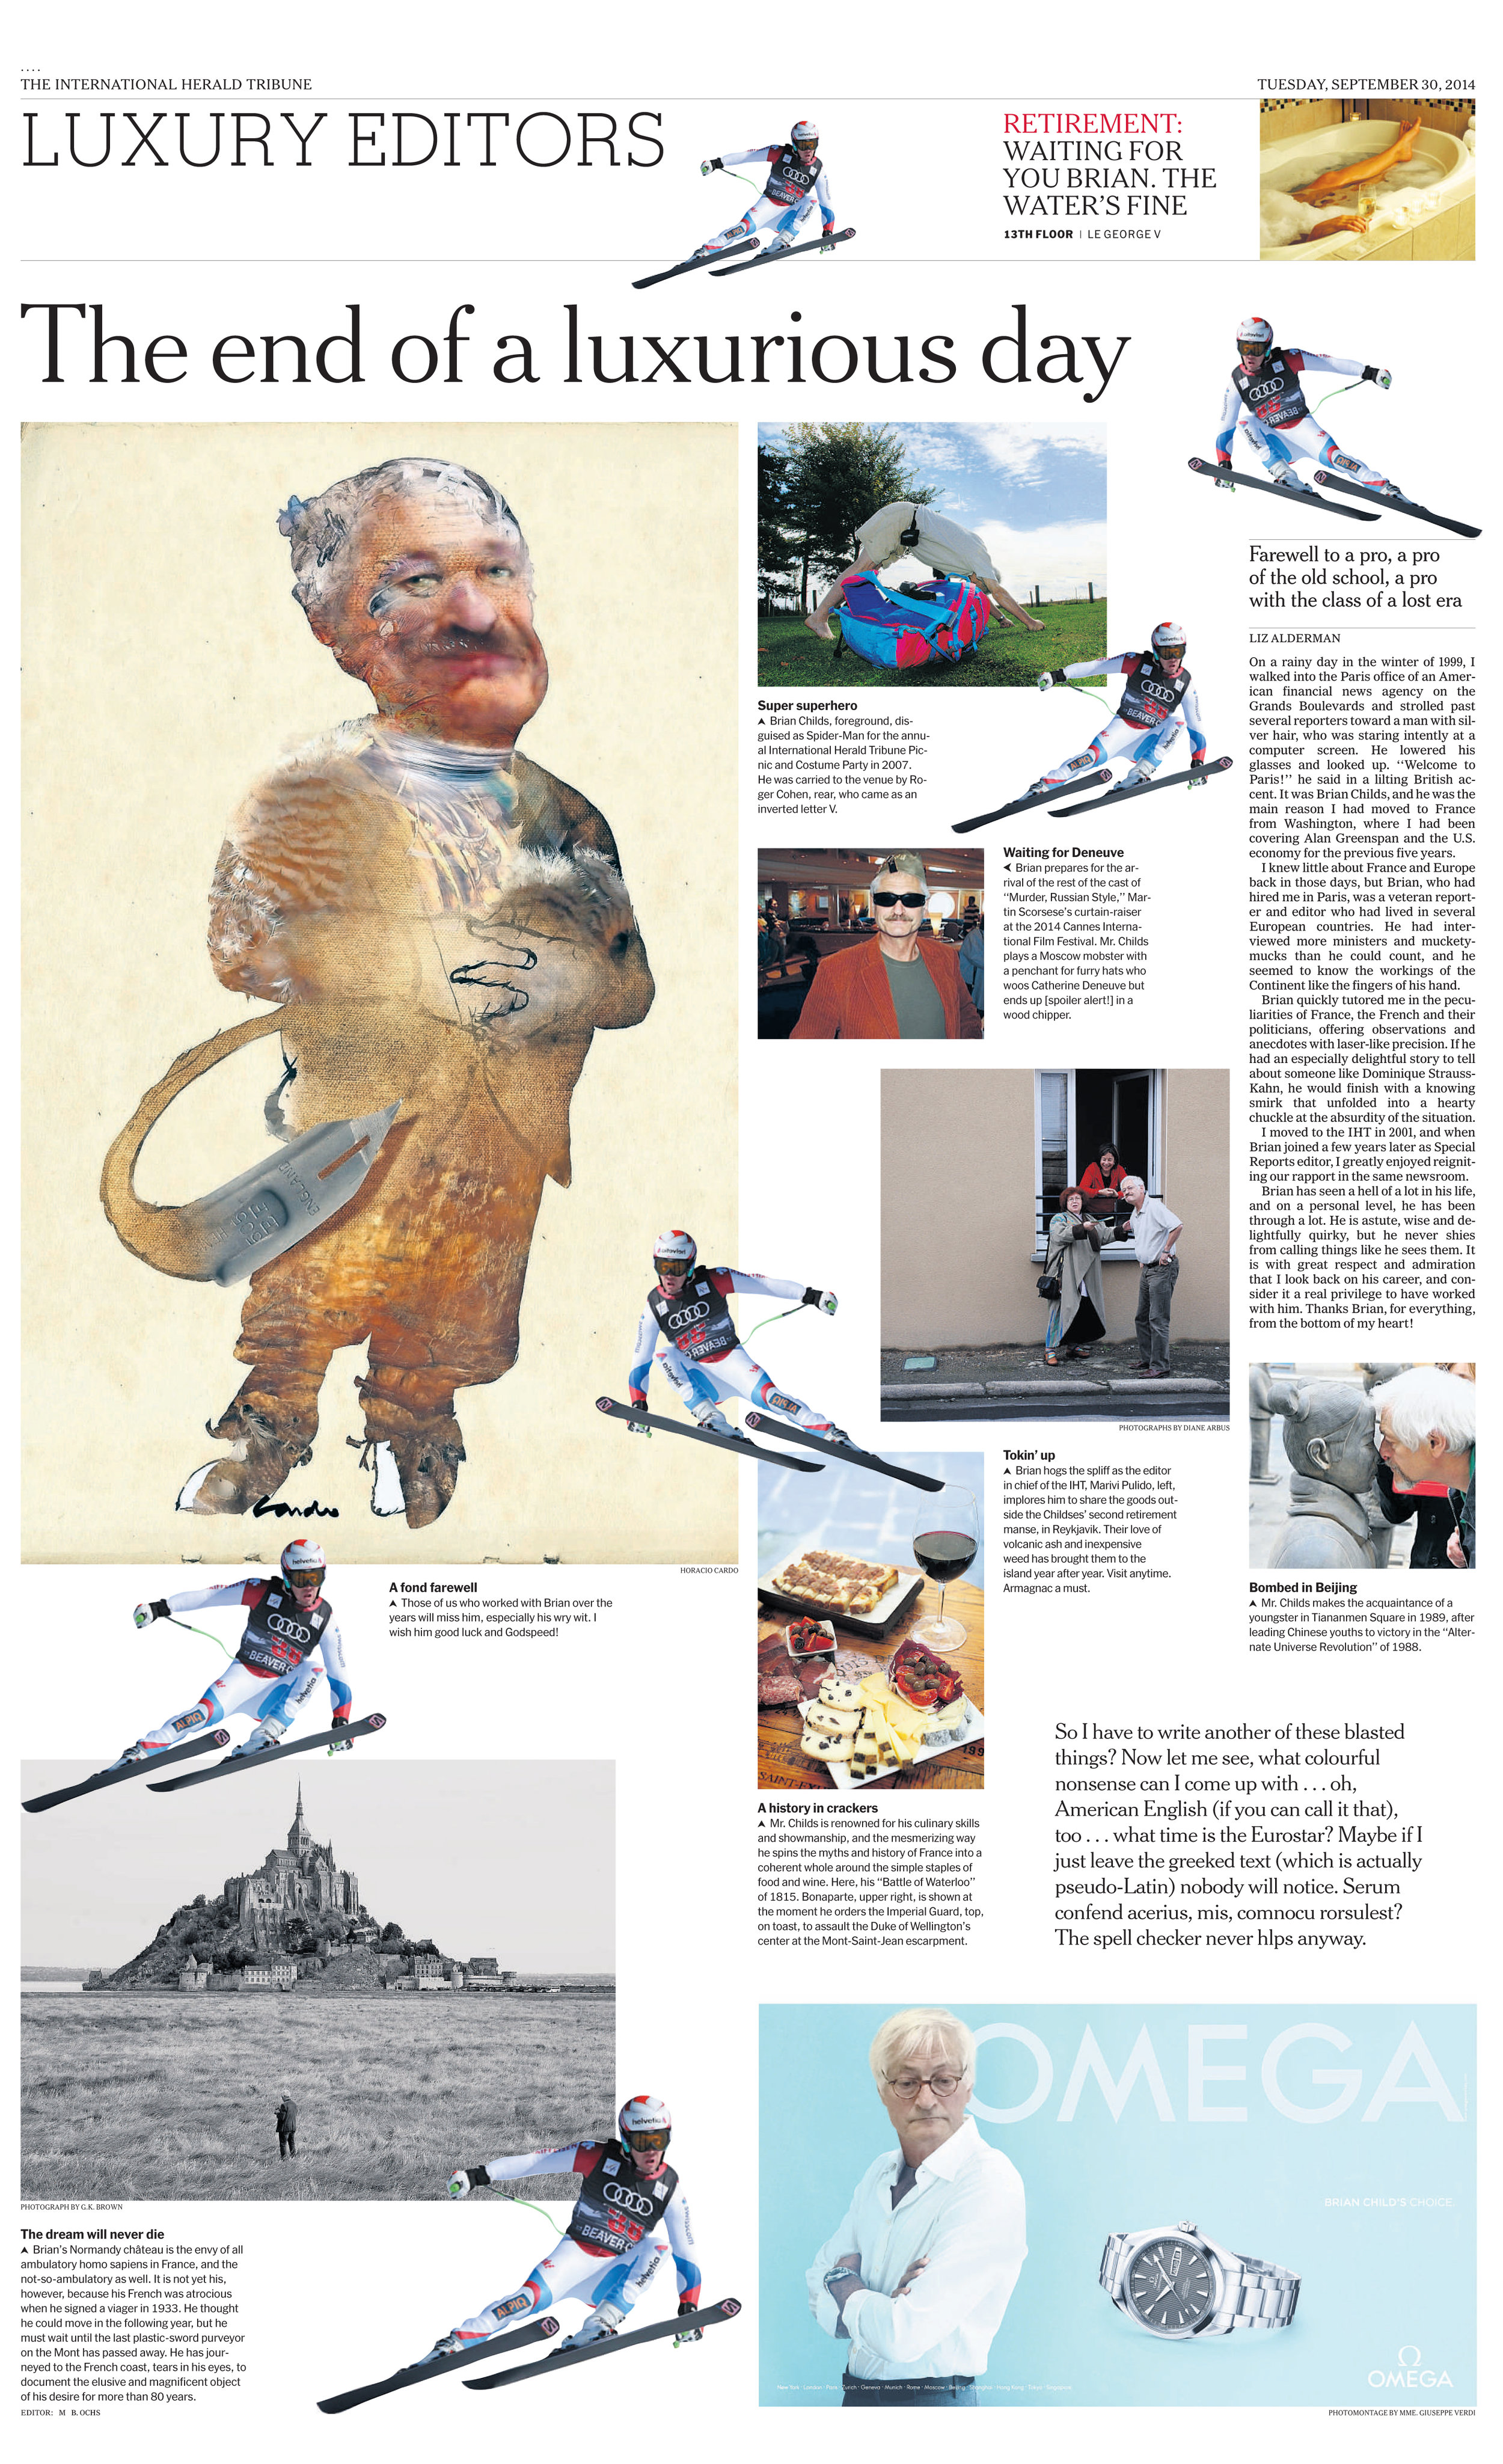 Jovial and tender page of internal circulation realized on the occasion of the retirement of the chief editor Brian Childs, for which the staff asked me to illustrate it with his caricature.